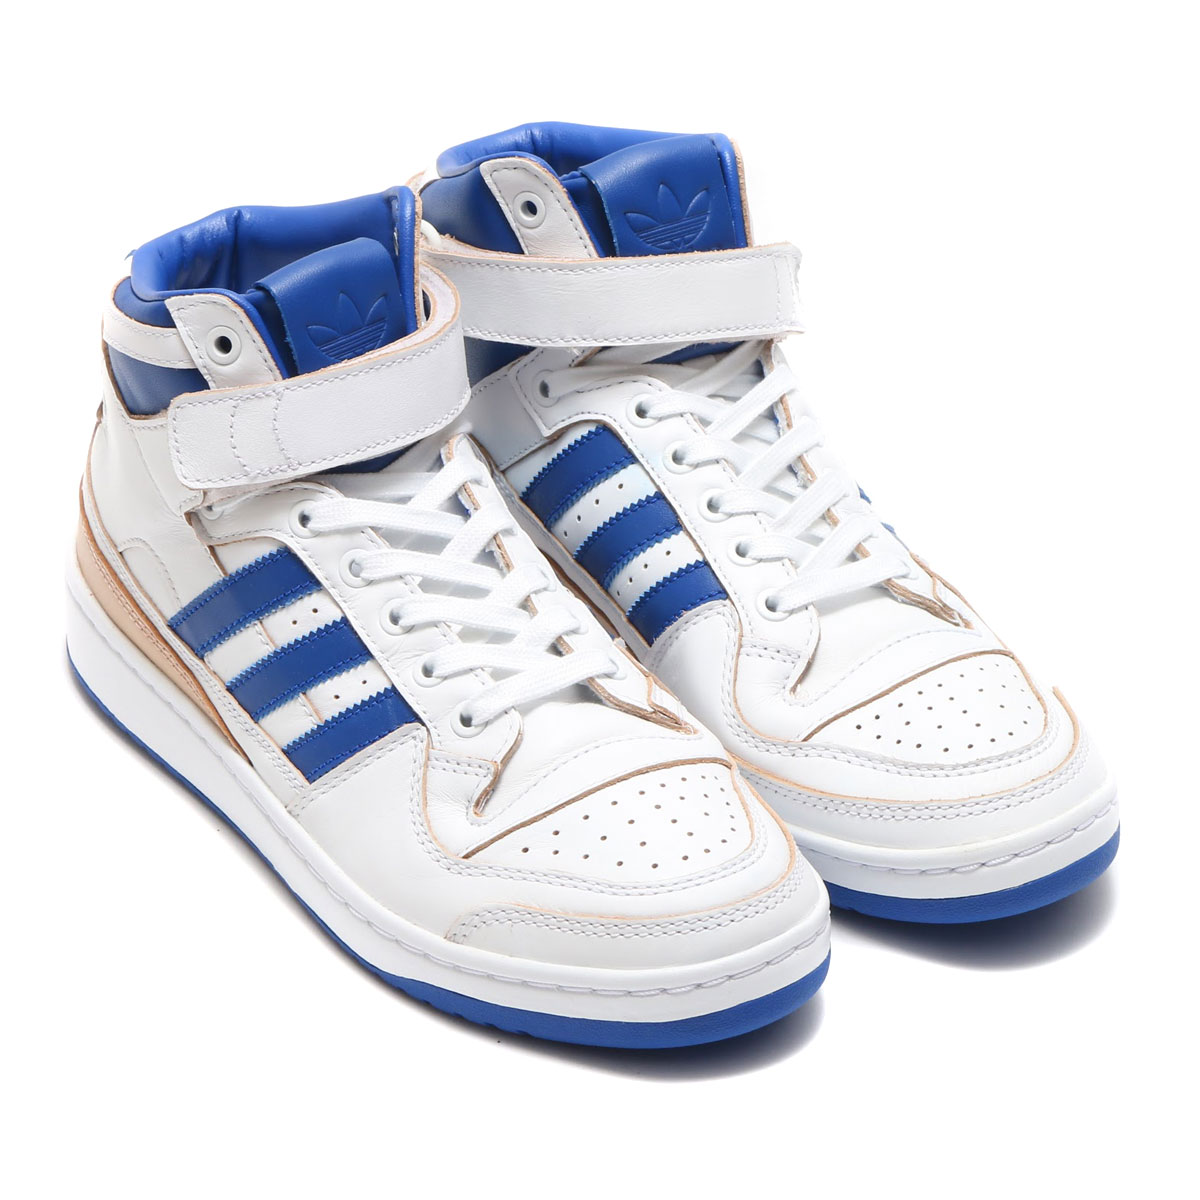 grossiste c4425 7a524 adidas Originals FORUM MID (Wrap) (Adidas originals forum mid (lap))  Running White/College Royal/Running White 17FW-S